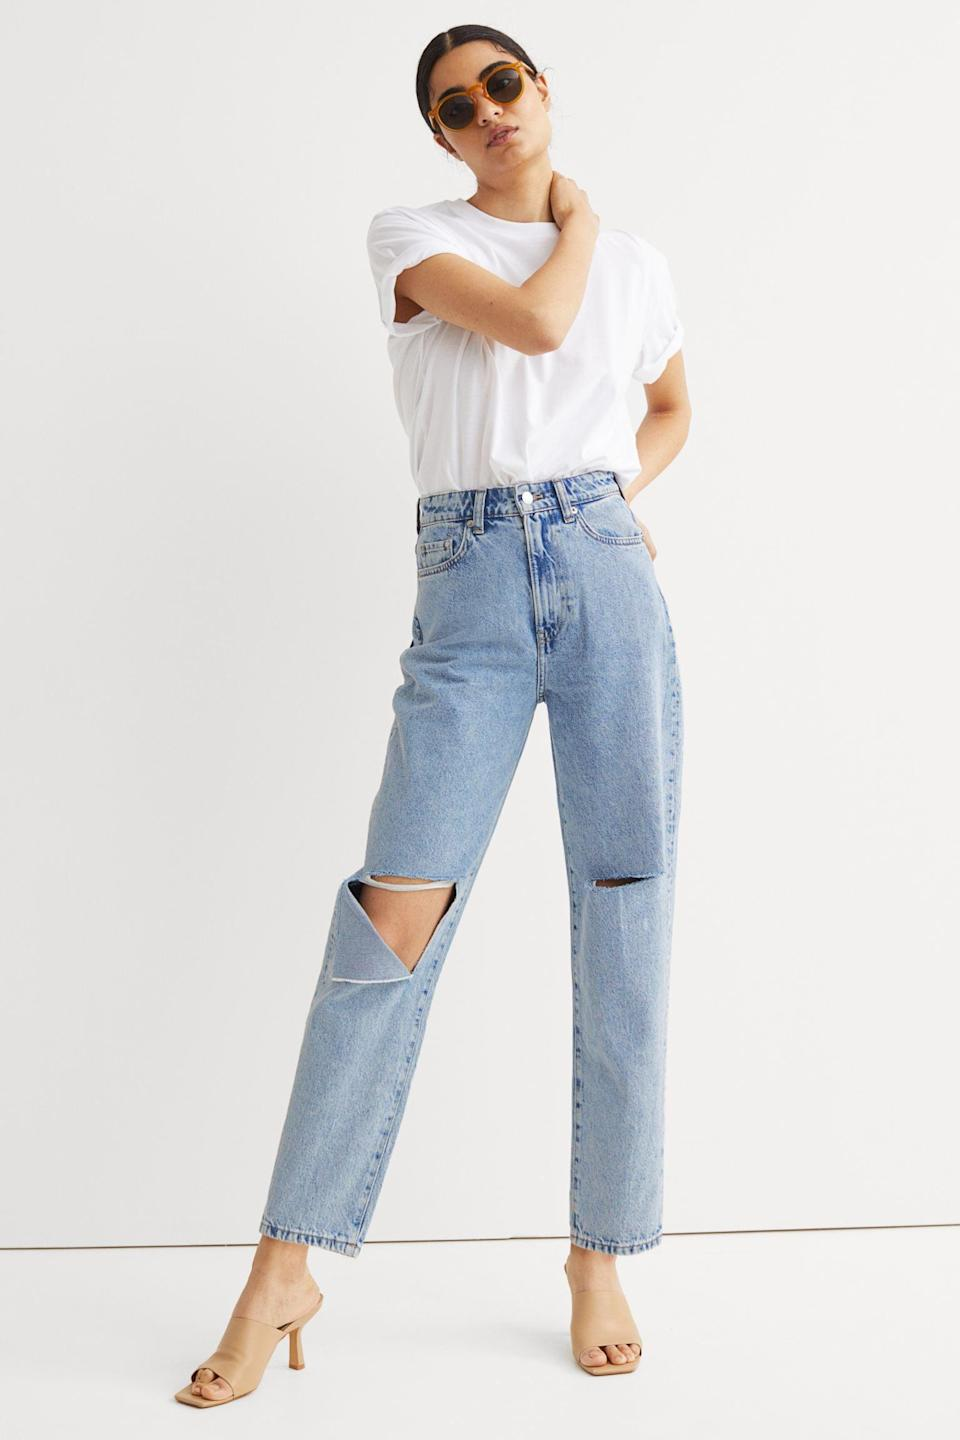 <p>When you think of the perfect summer jeans, they look something like these <span>H&amp;M Mom High Ankle Jeans</span> ($20). They're high-waisted, with rips that look chic, not sloppy.</p>